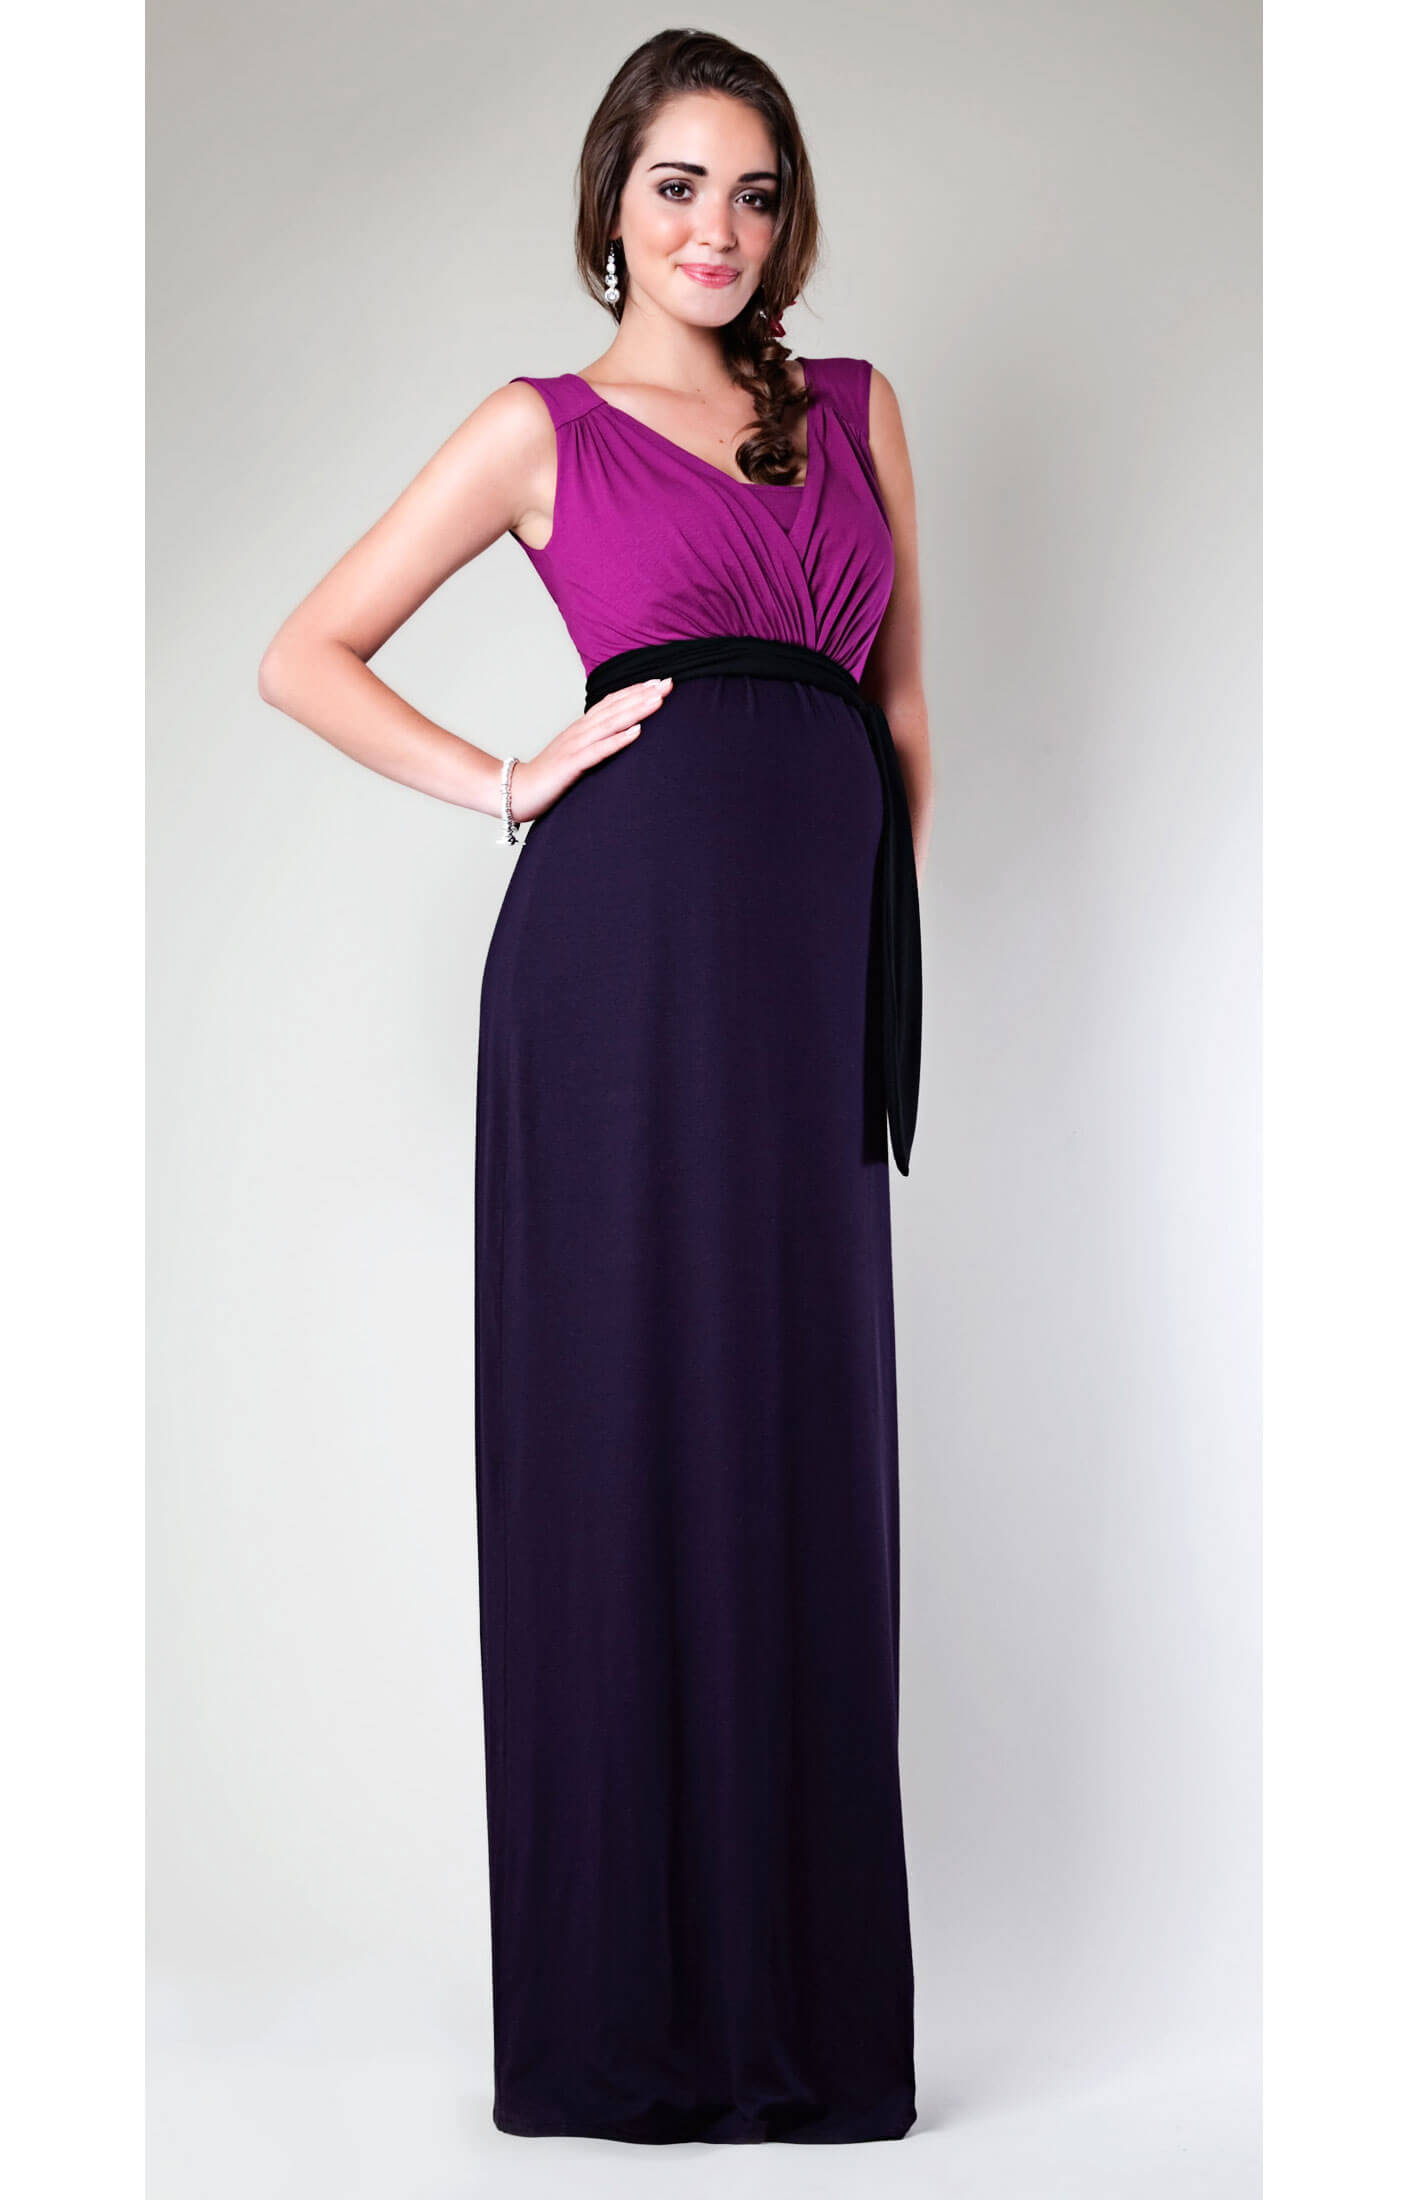 Berry maternity maxi dress